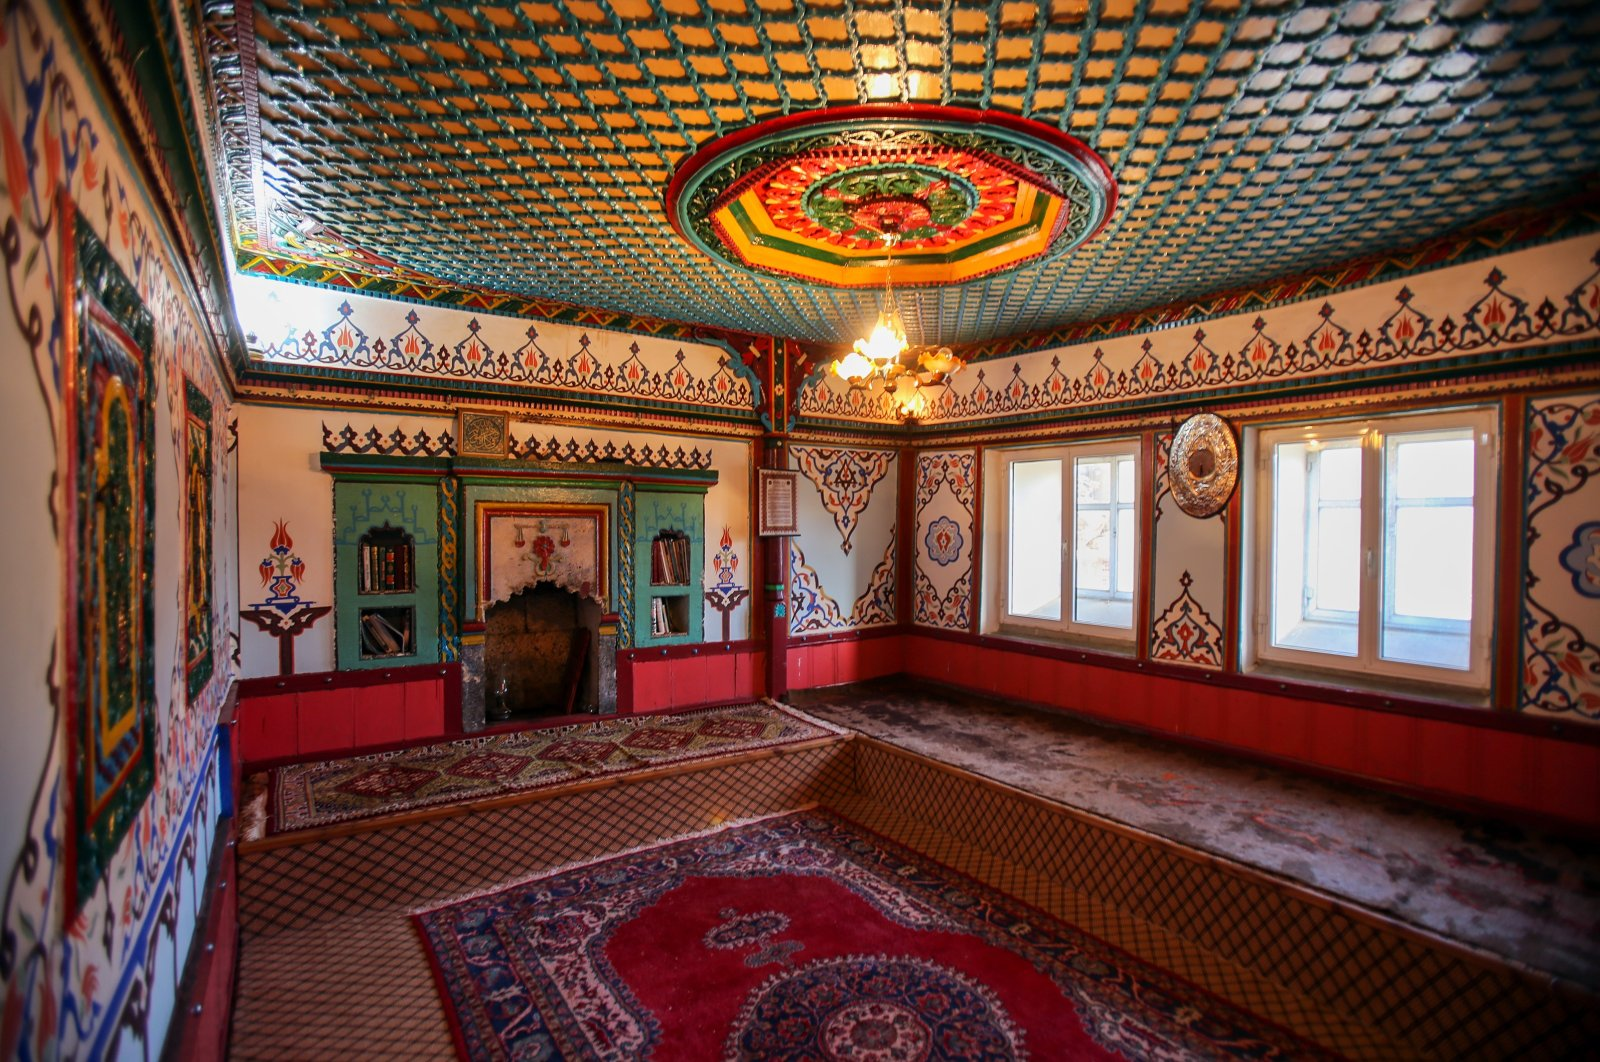 The ornate rooms are the places where social life continues in the village. (İHA Photo)